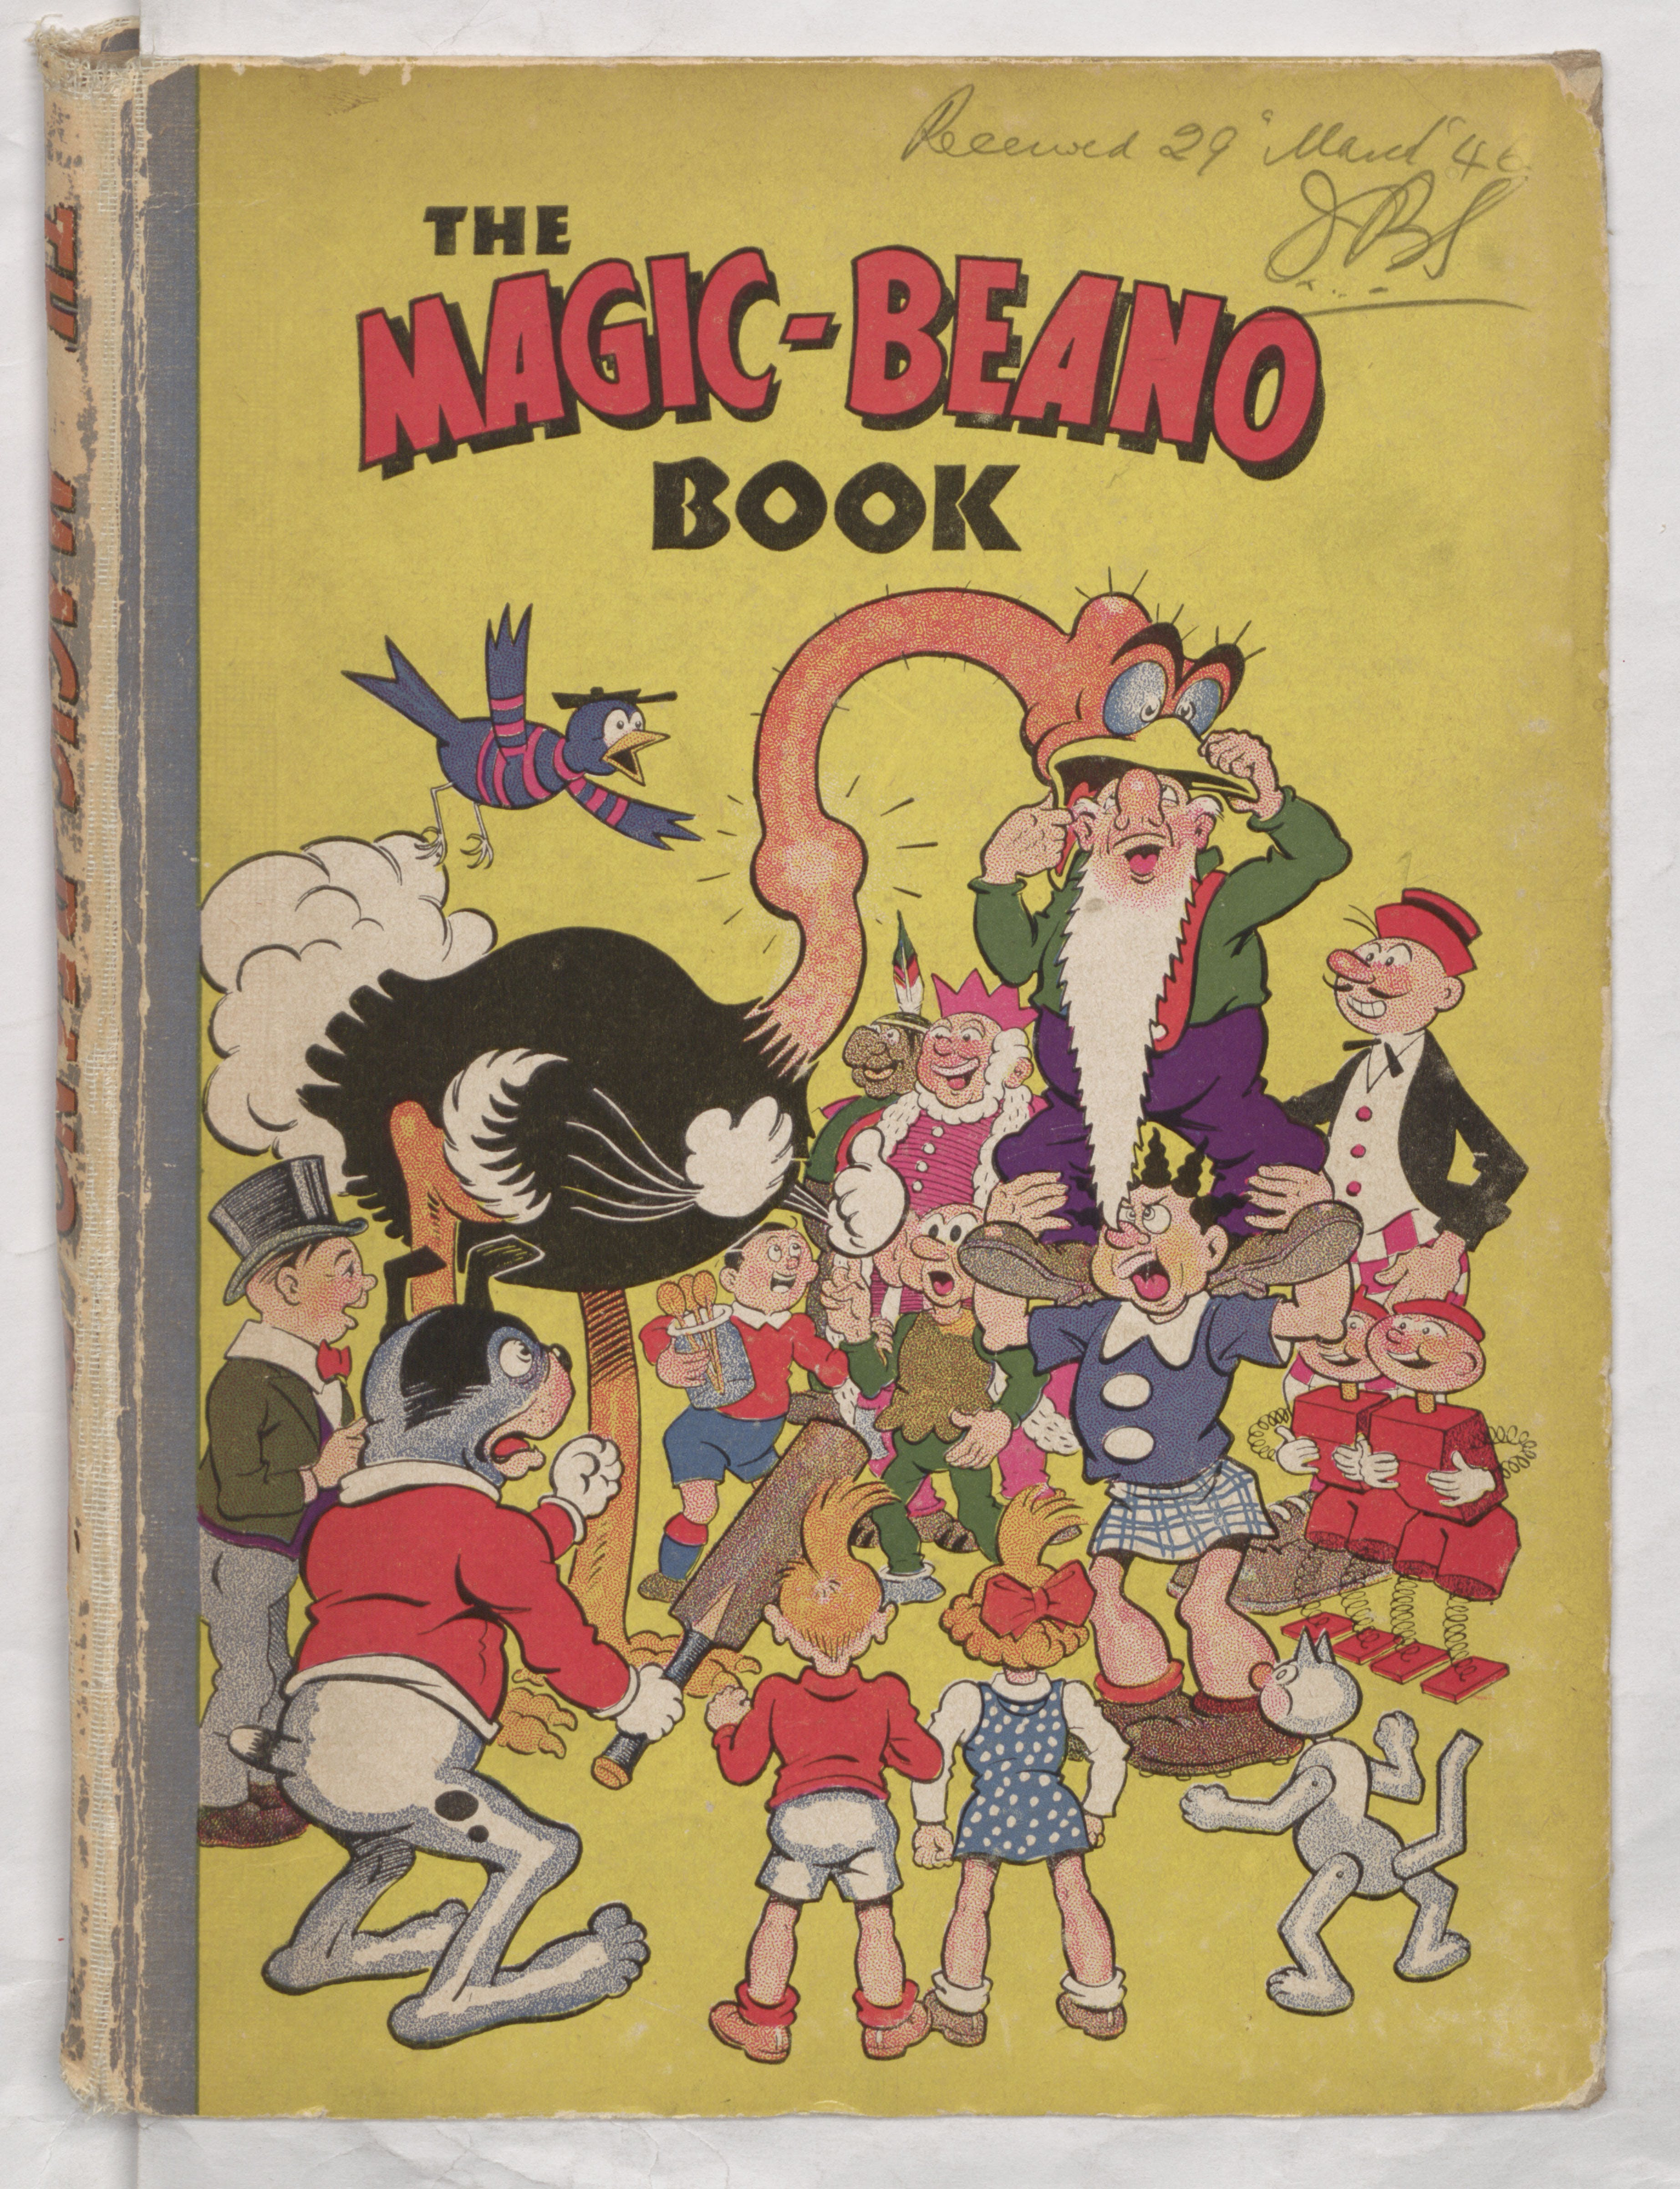 1947 Magic-Beano Book - Annual Cover